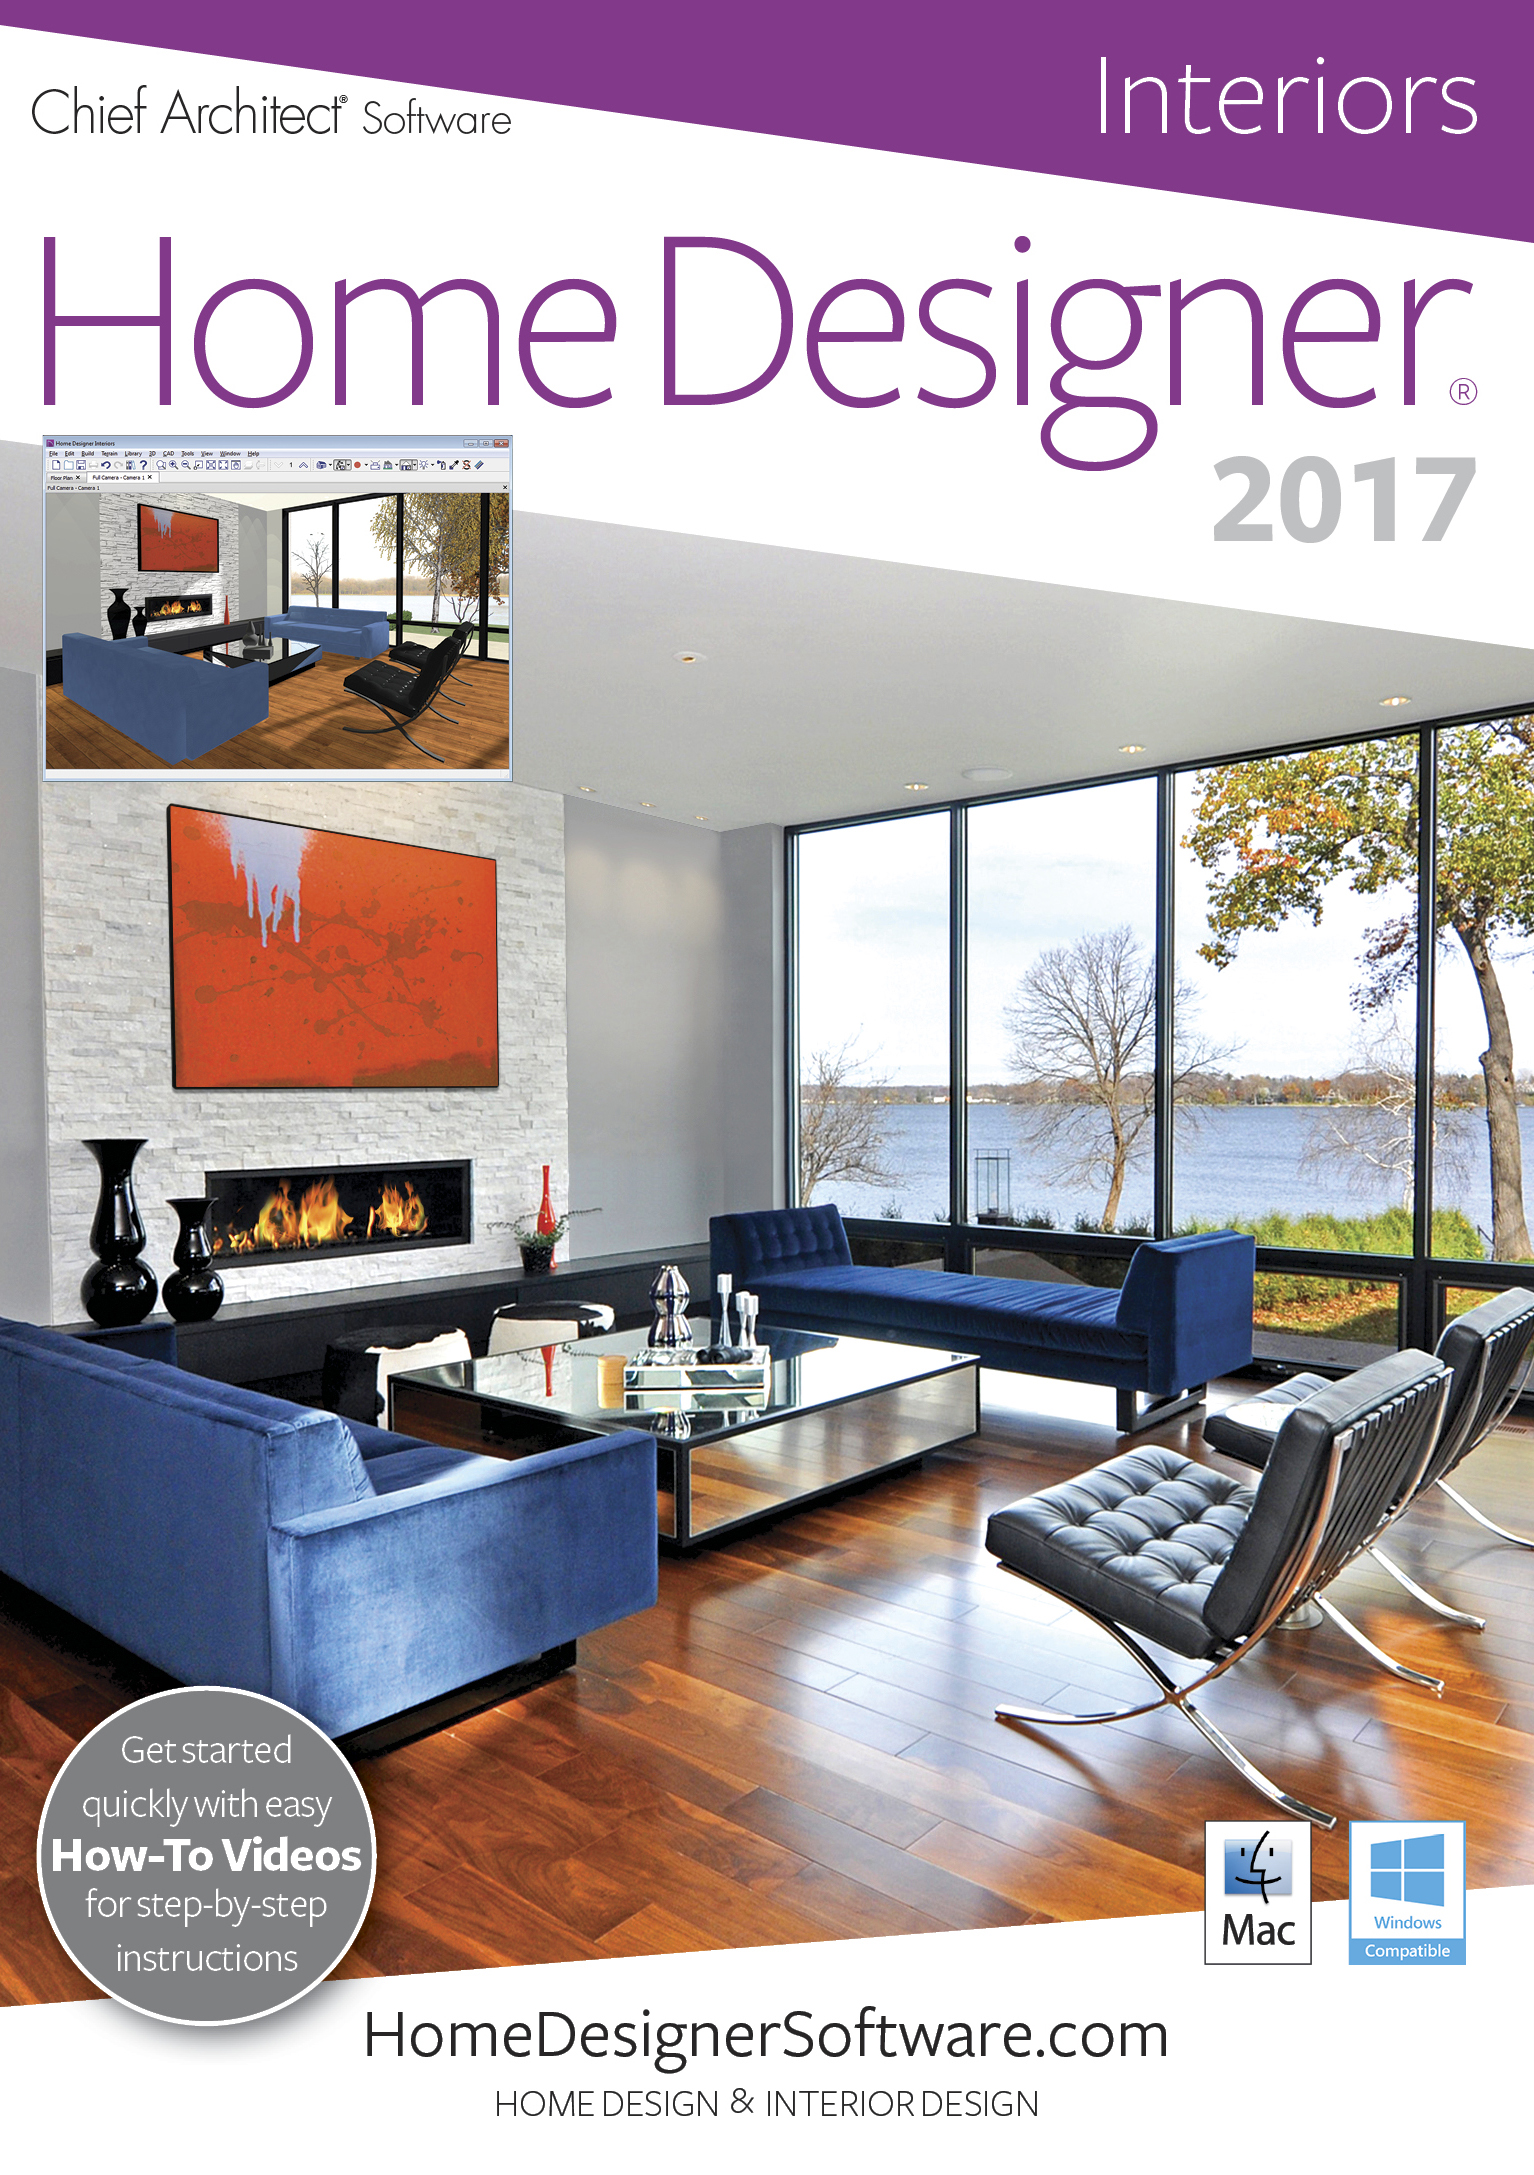 Home Designer Interiors 2017 [Mac] by Chief Architect